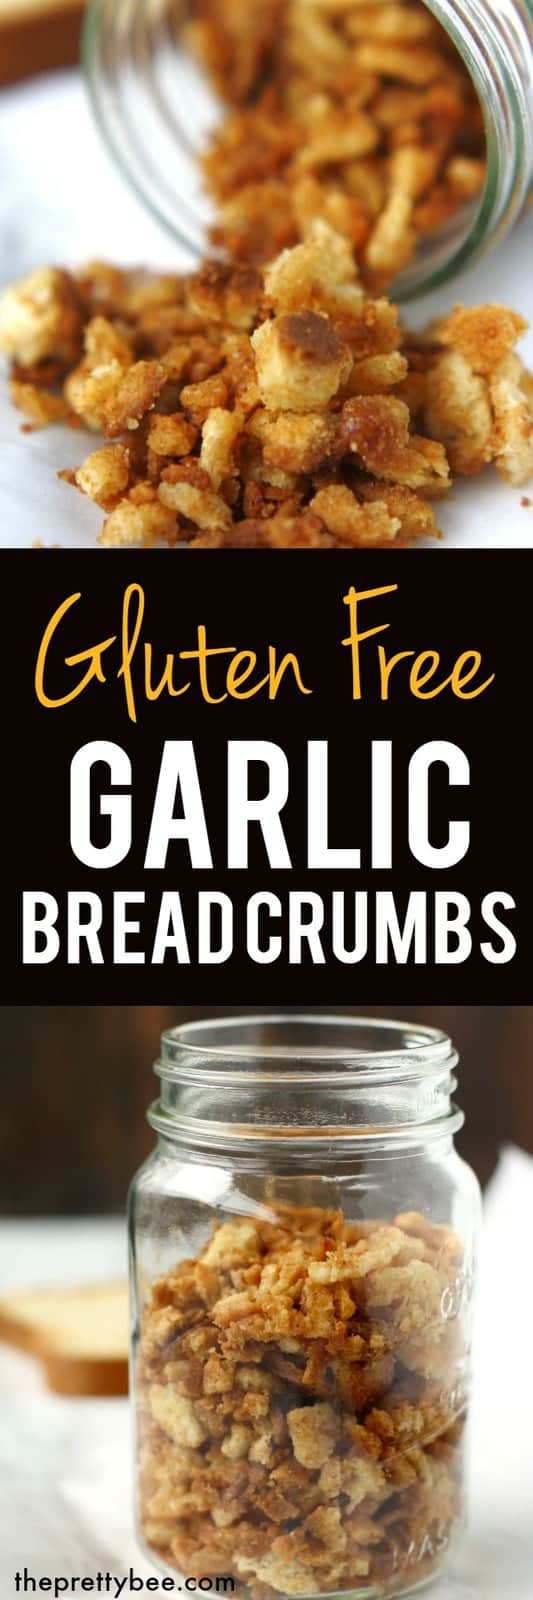 Are Bread Crumbs Gluten Free  How to Make Gluten Free Bread Crumbs The Pretty Bee